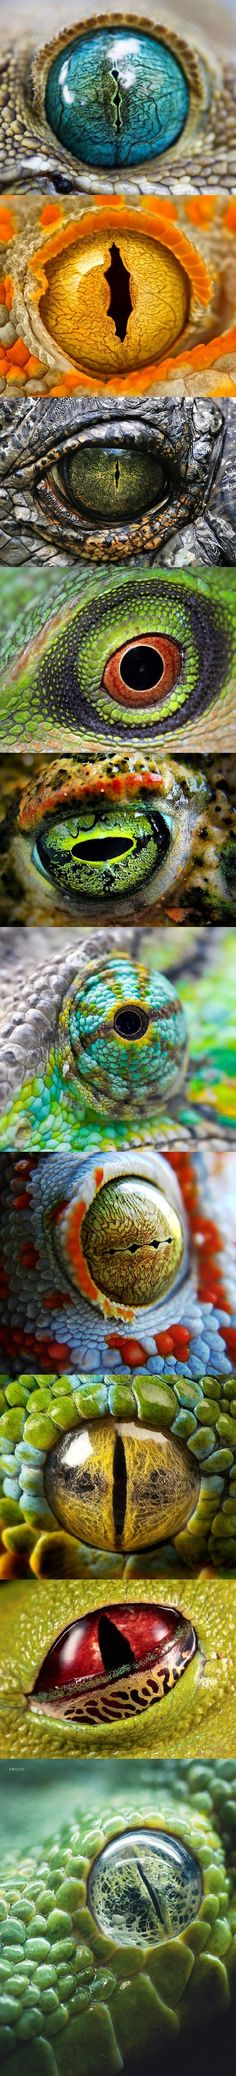 Reptile eyes...awesome!